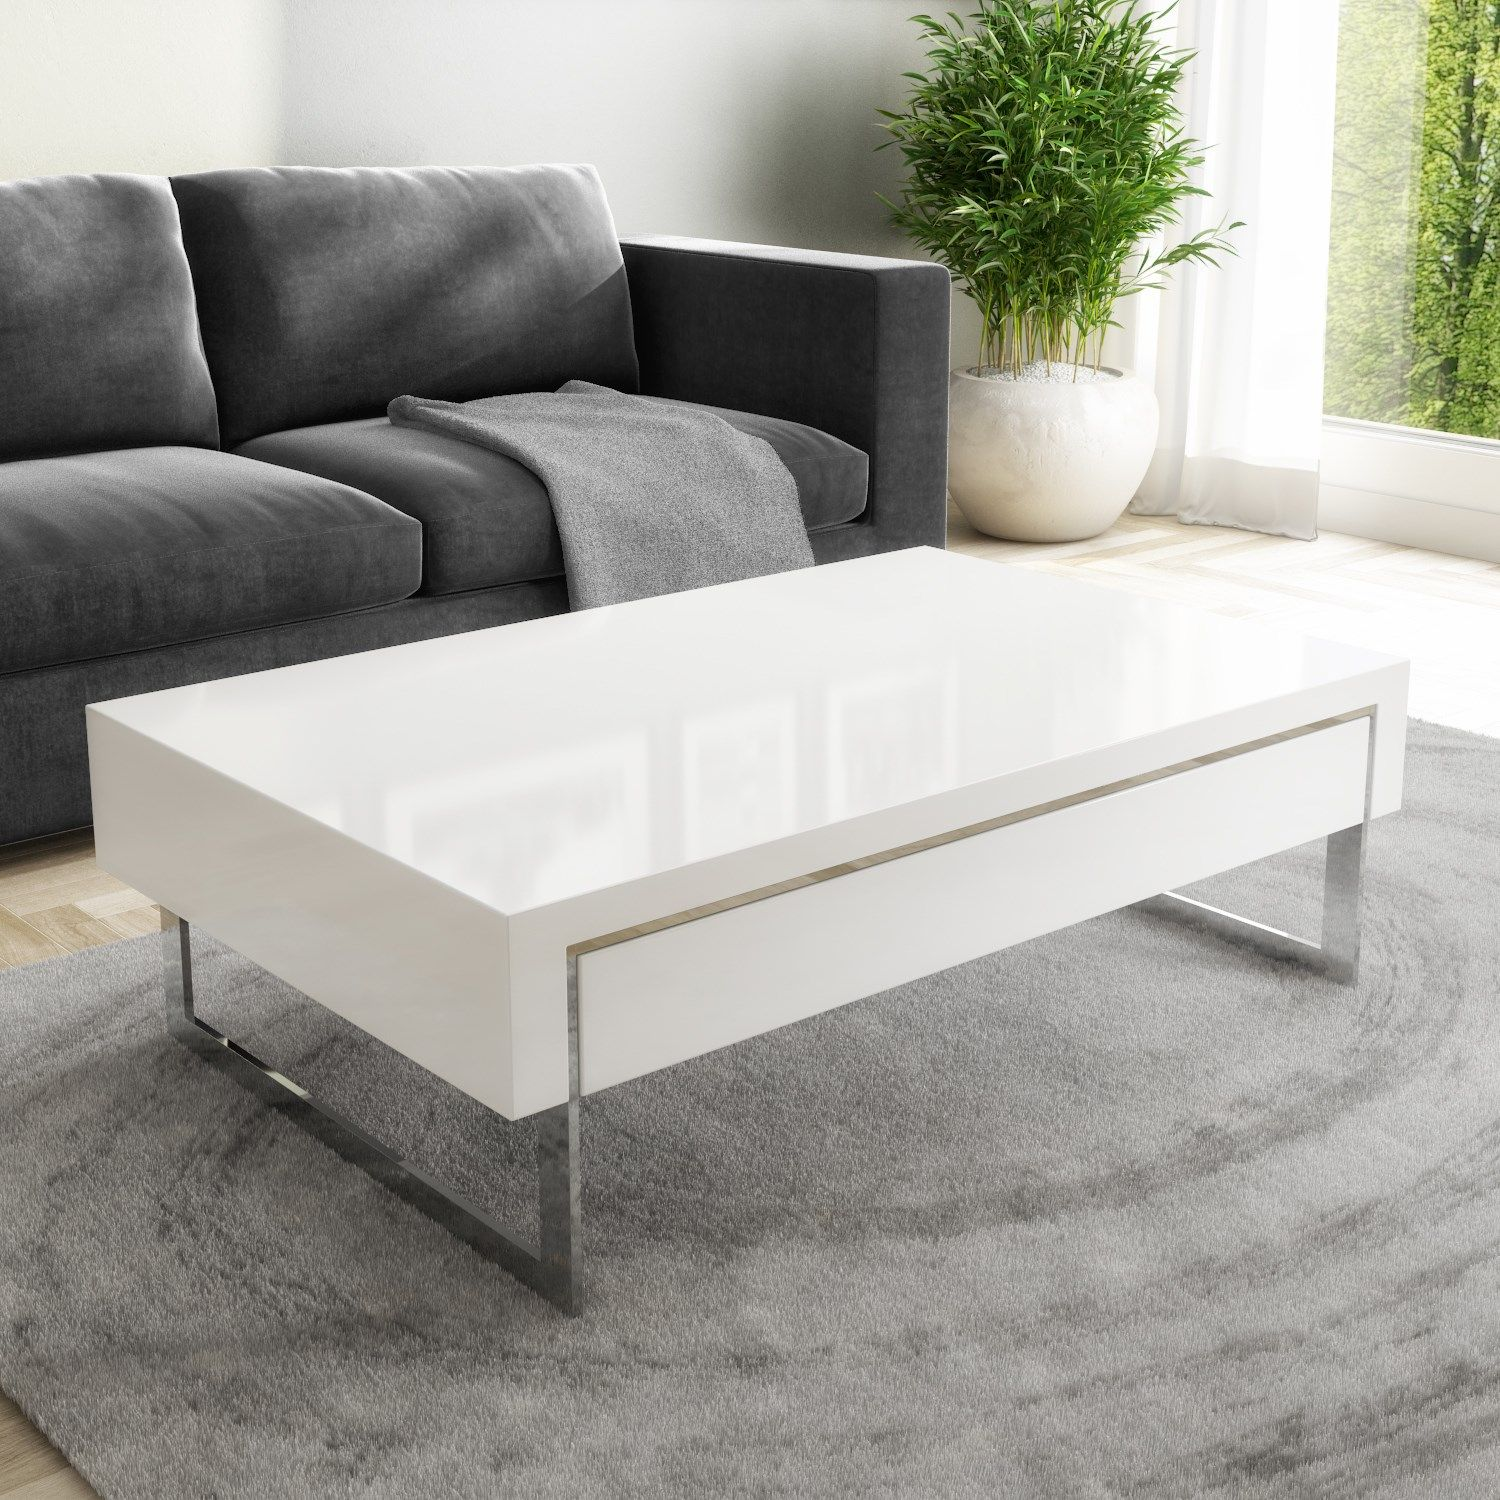 White Gloss Coffee Table With Storage Drawers Evoque Furniture123 Coffee Table With Storage Coffee Table White Furniture Living Room [ 1500 x 1500 Pixel ]